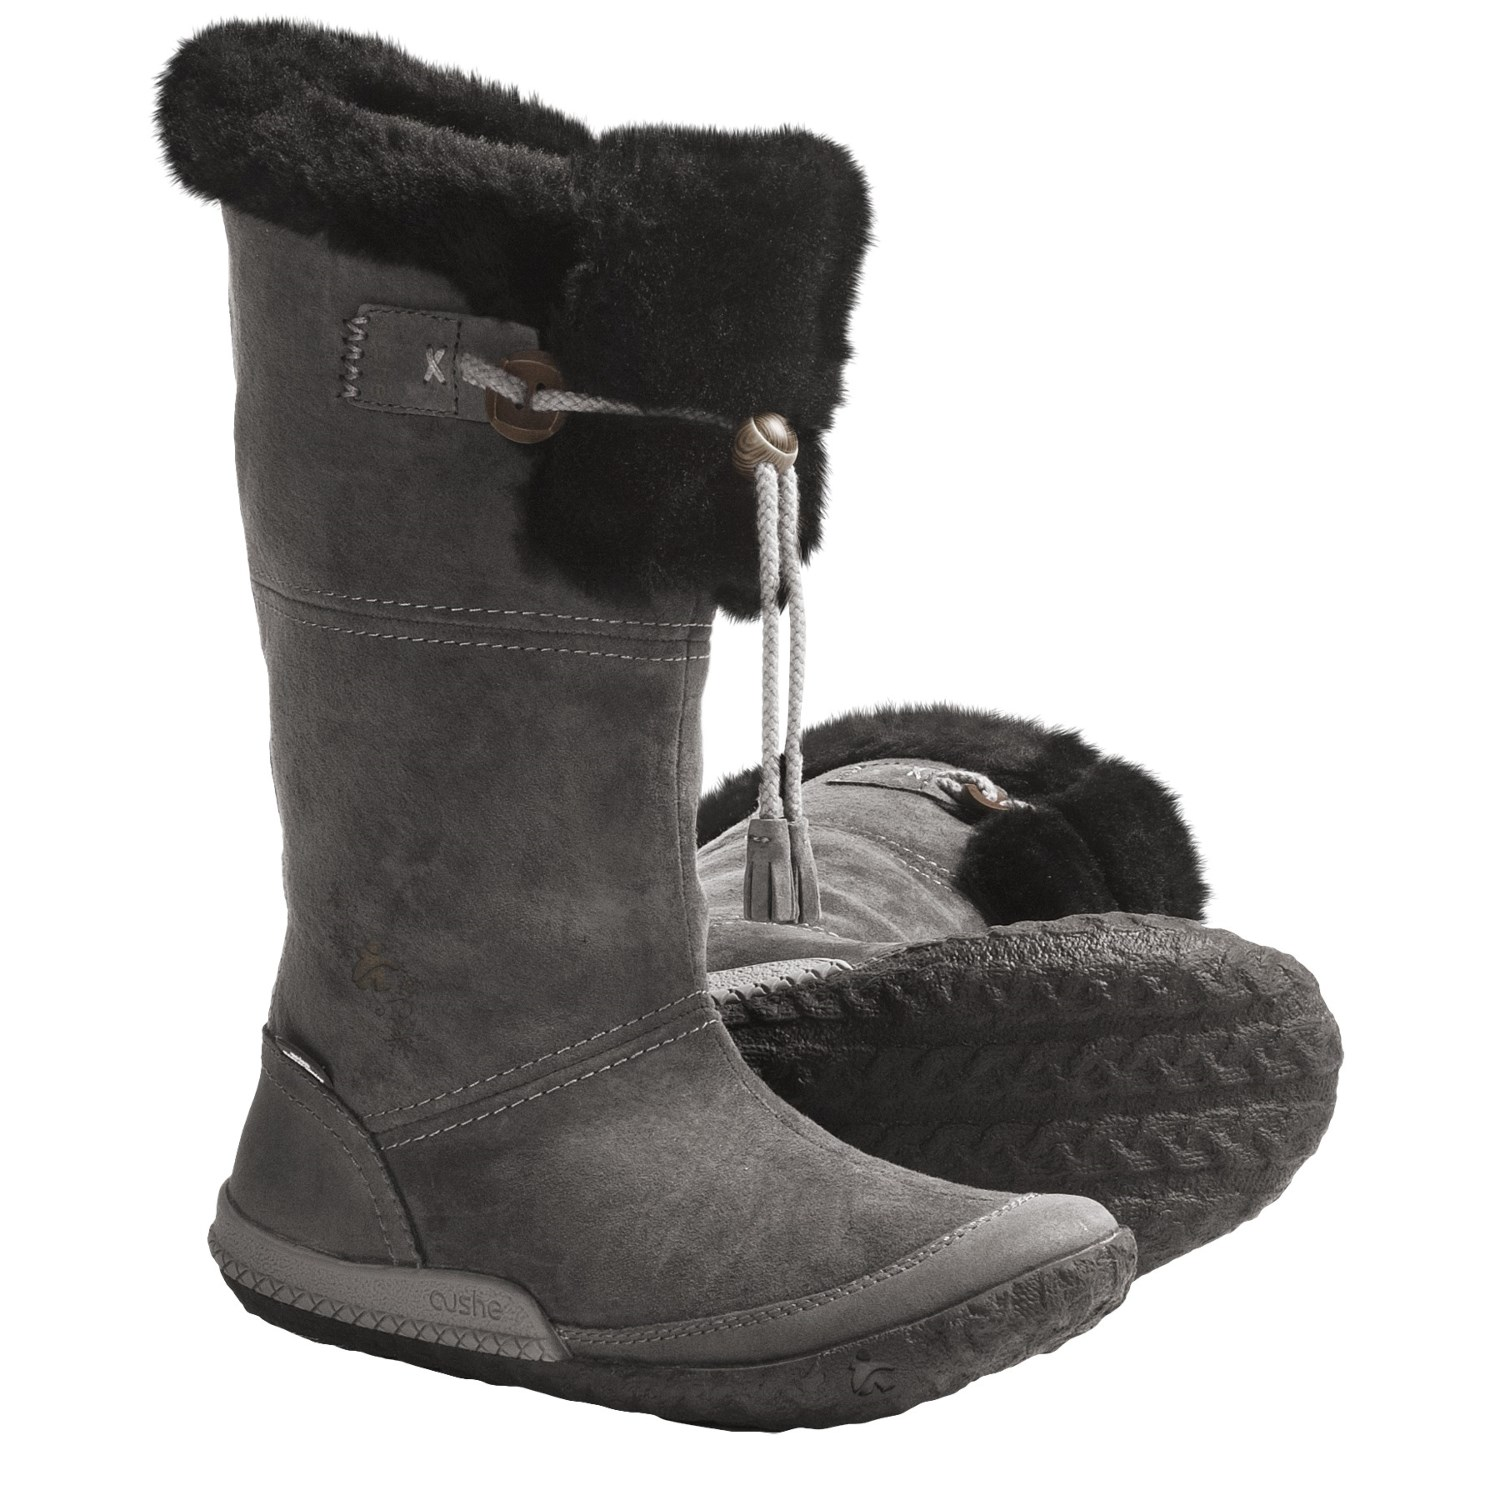 cushe cabin fever boots waterproof leather for